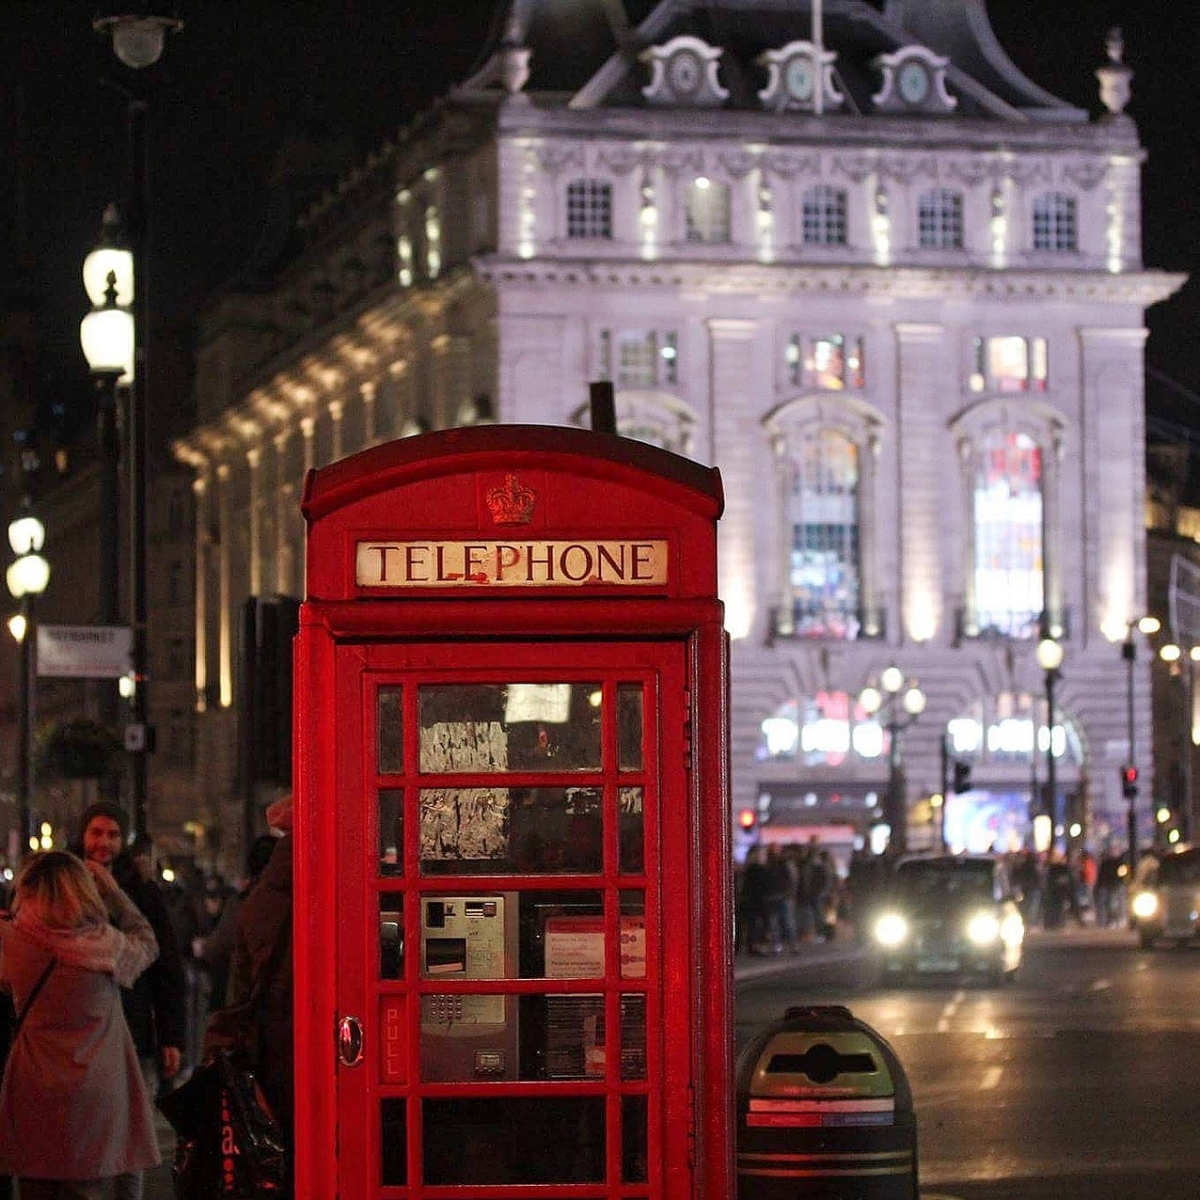 Red telephone box in London at night